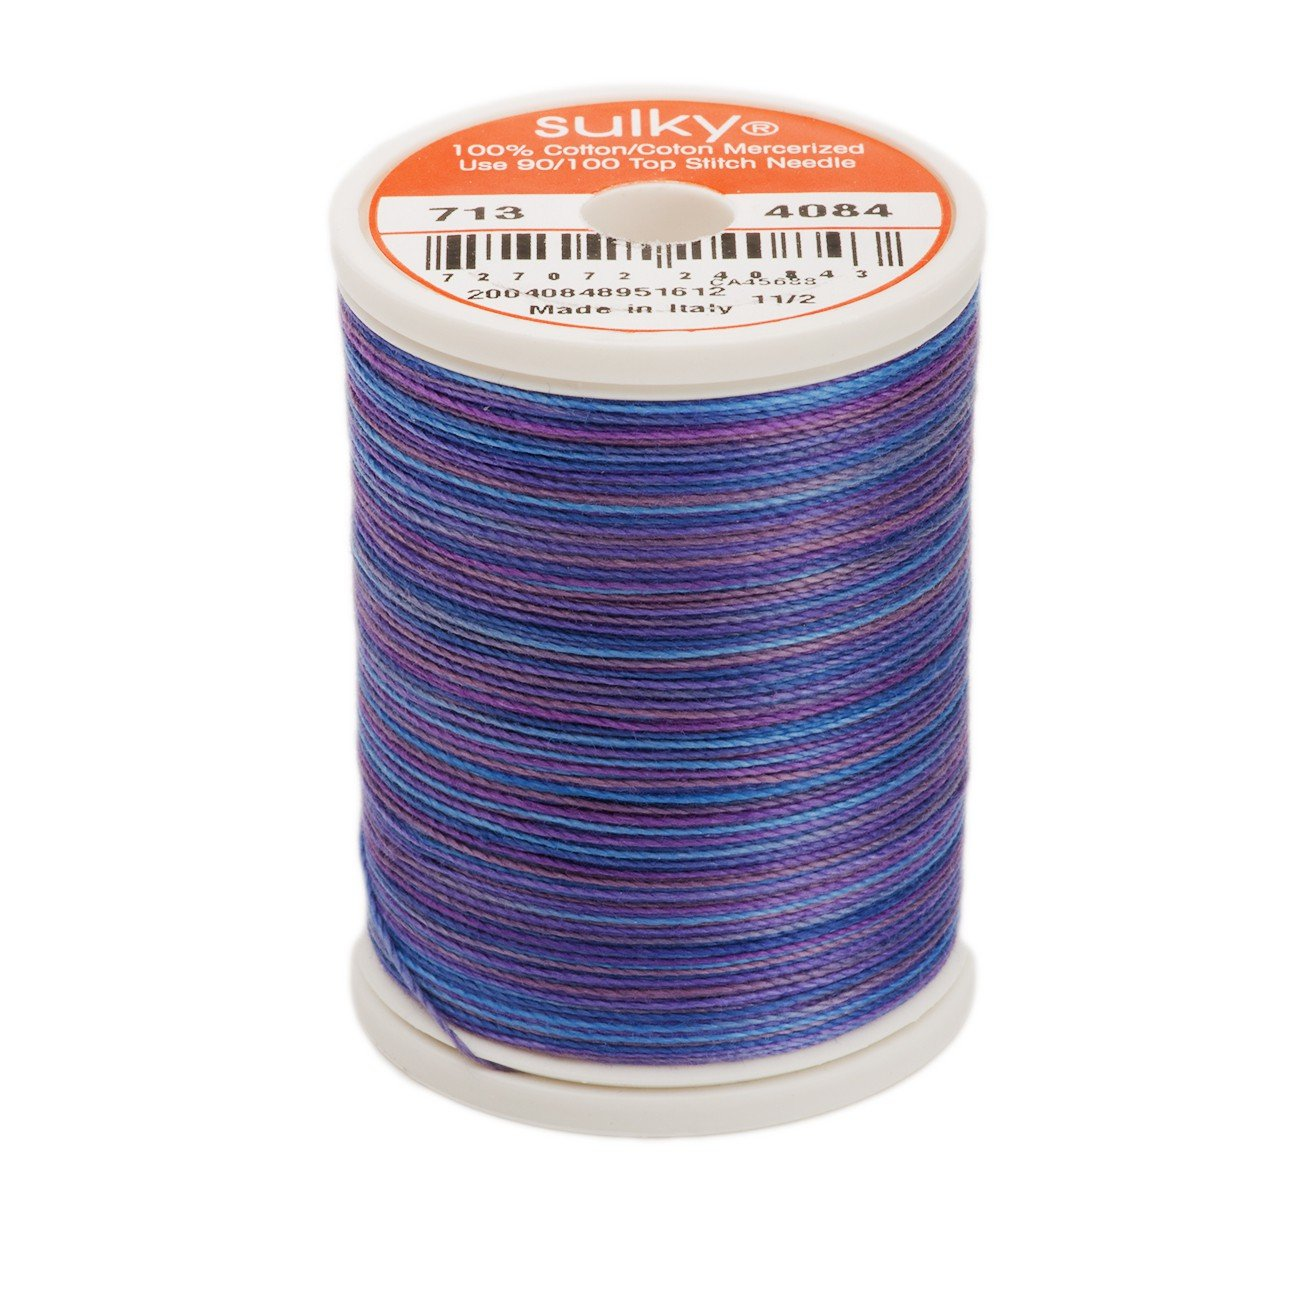 330-Yard Twilight Sulky 713-4084 12-Weight Cotton Blendable Thread